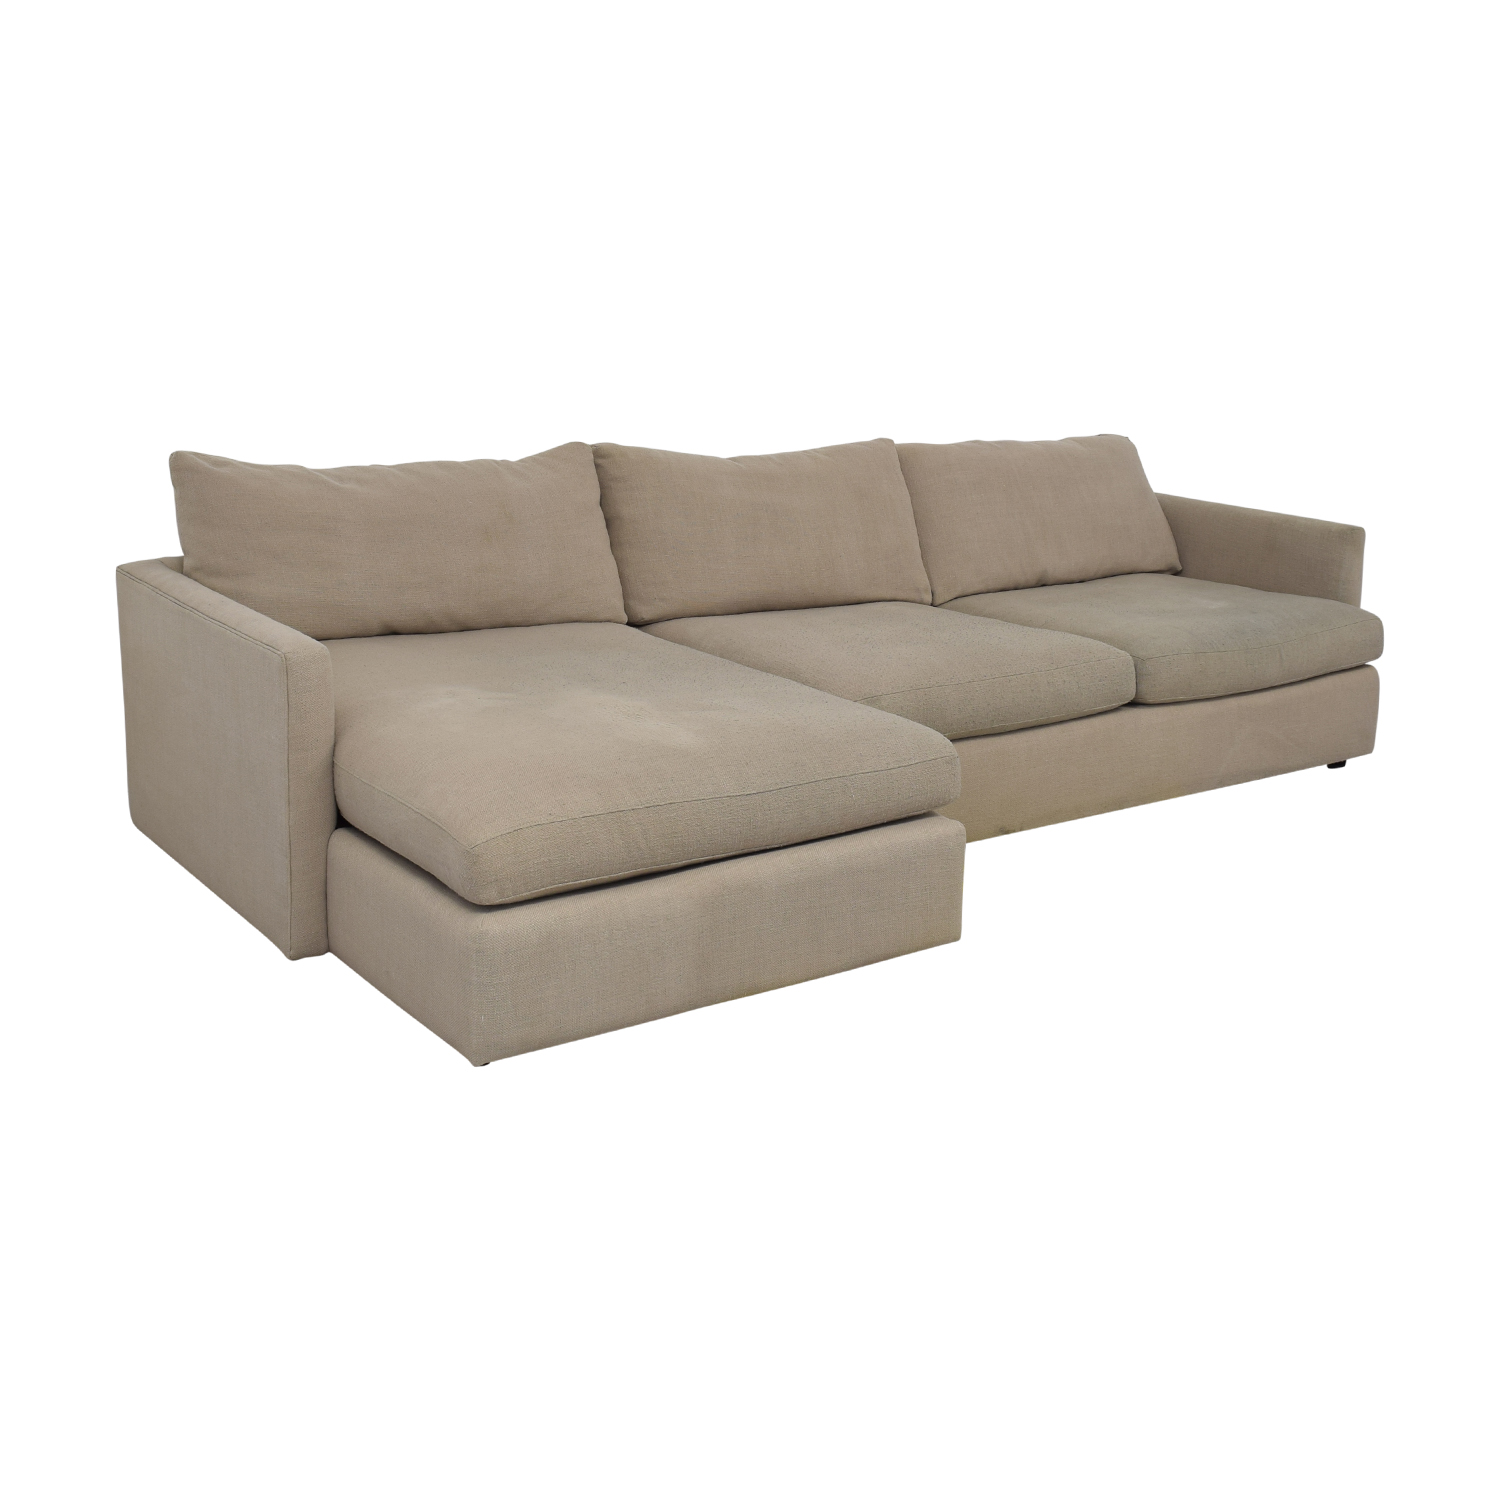 Crate & Barrel Crate & Barrel Axis II Chaise Sectional Sofa used